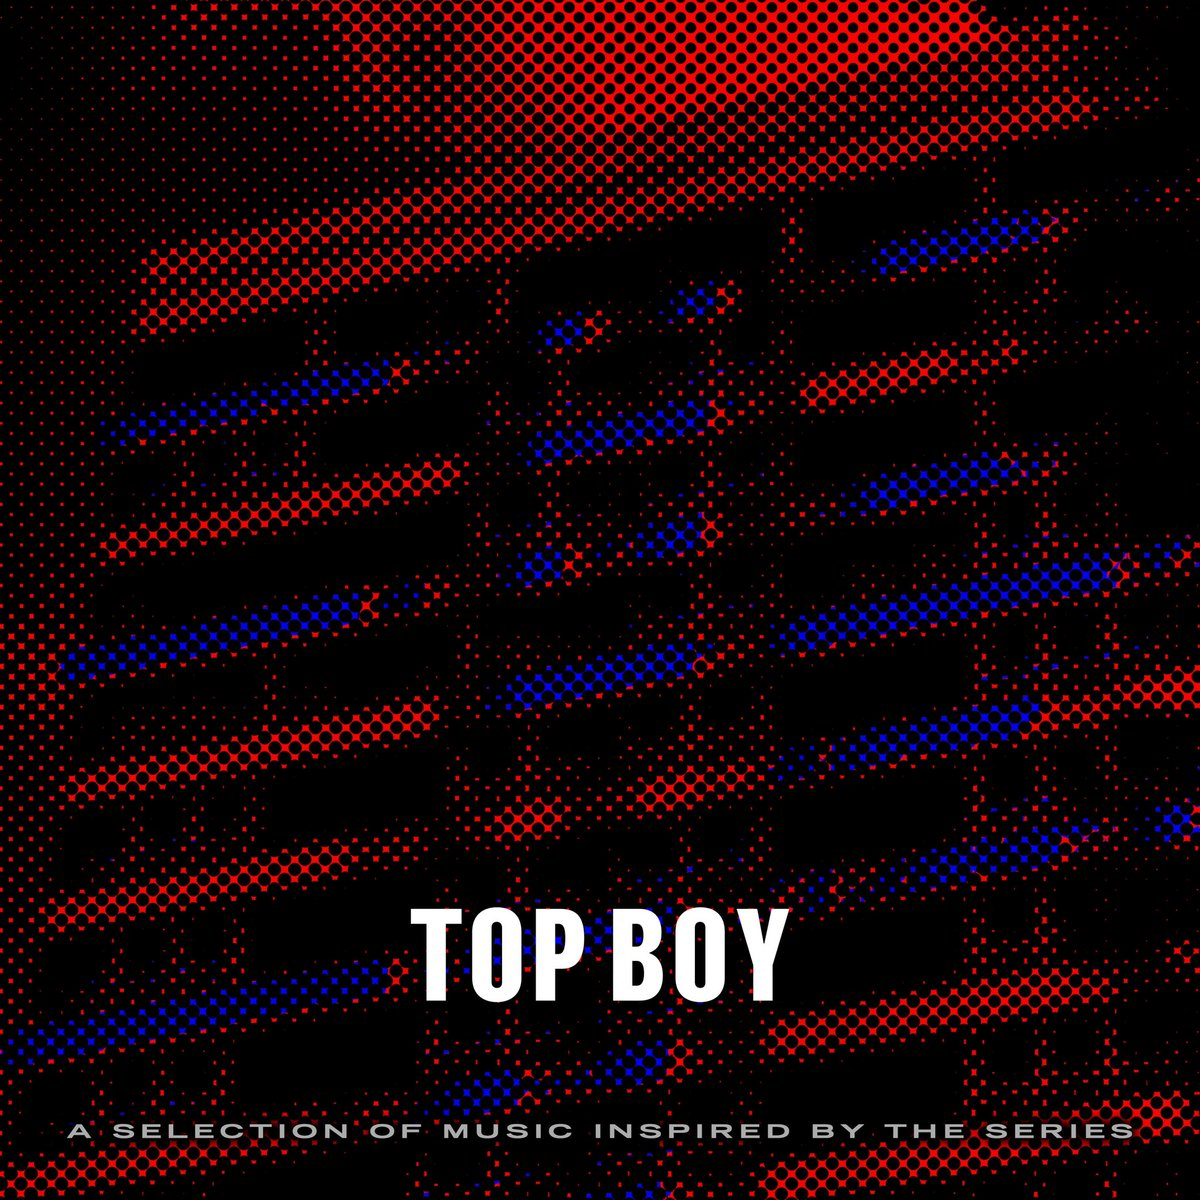 OVO Sound Top Boy soundtrack album